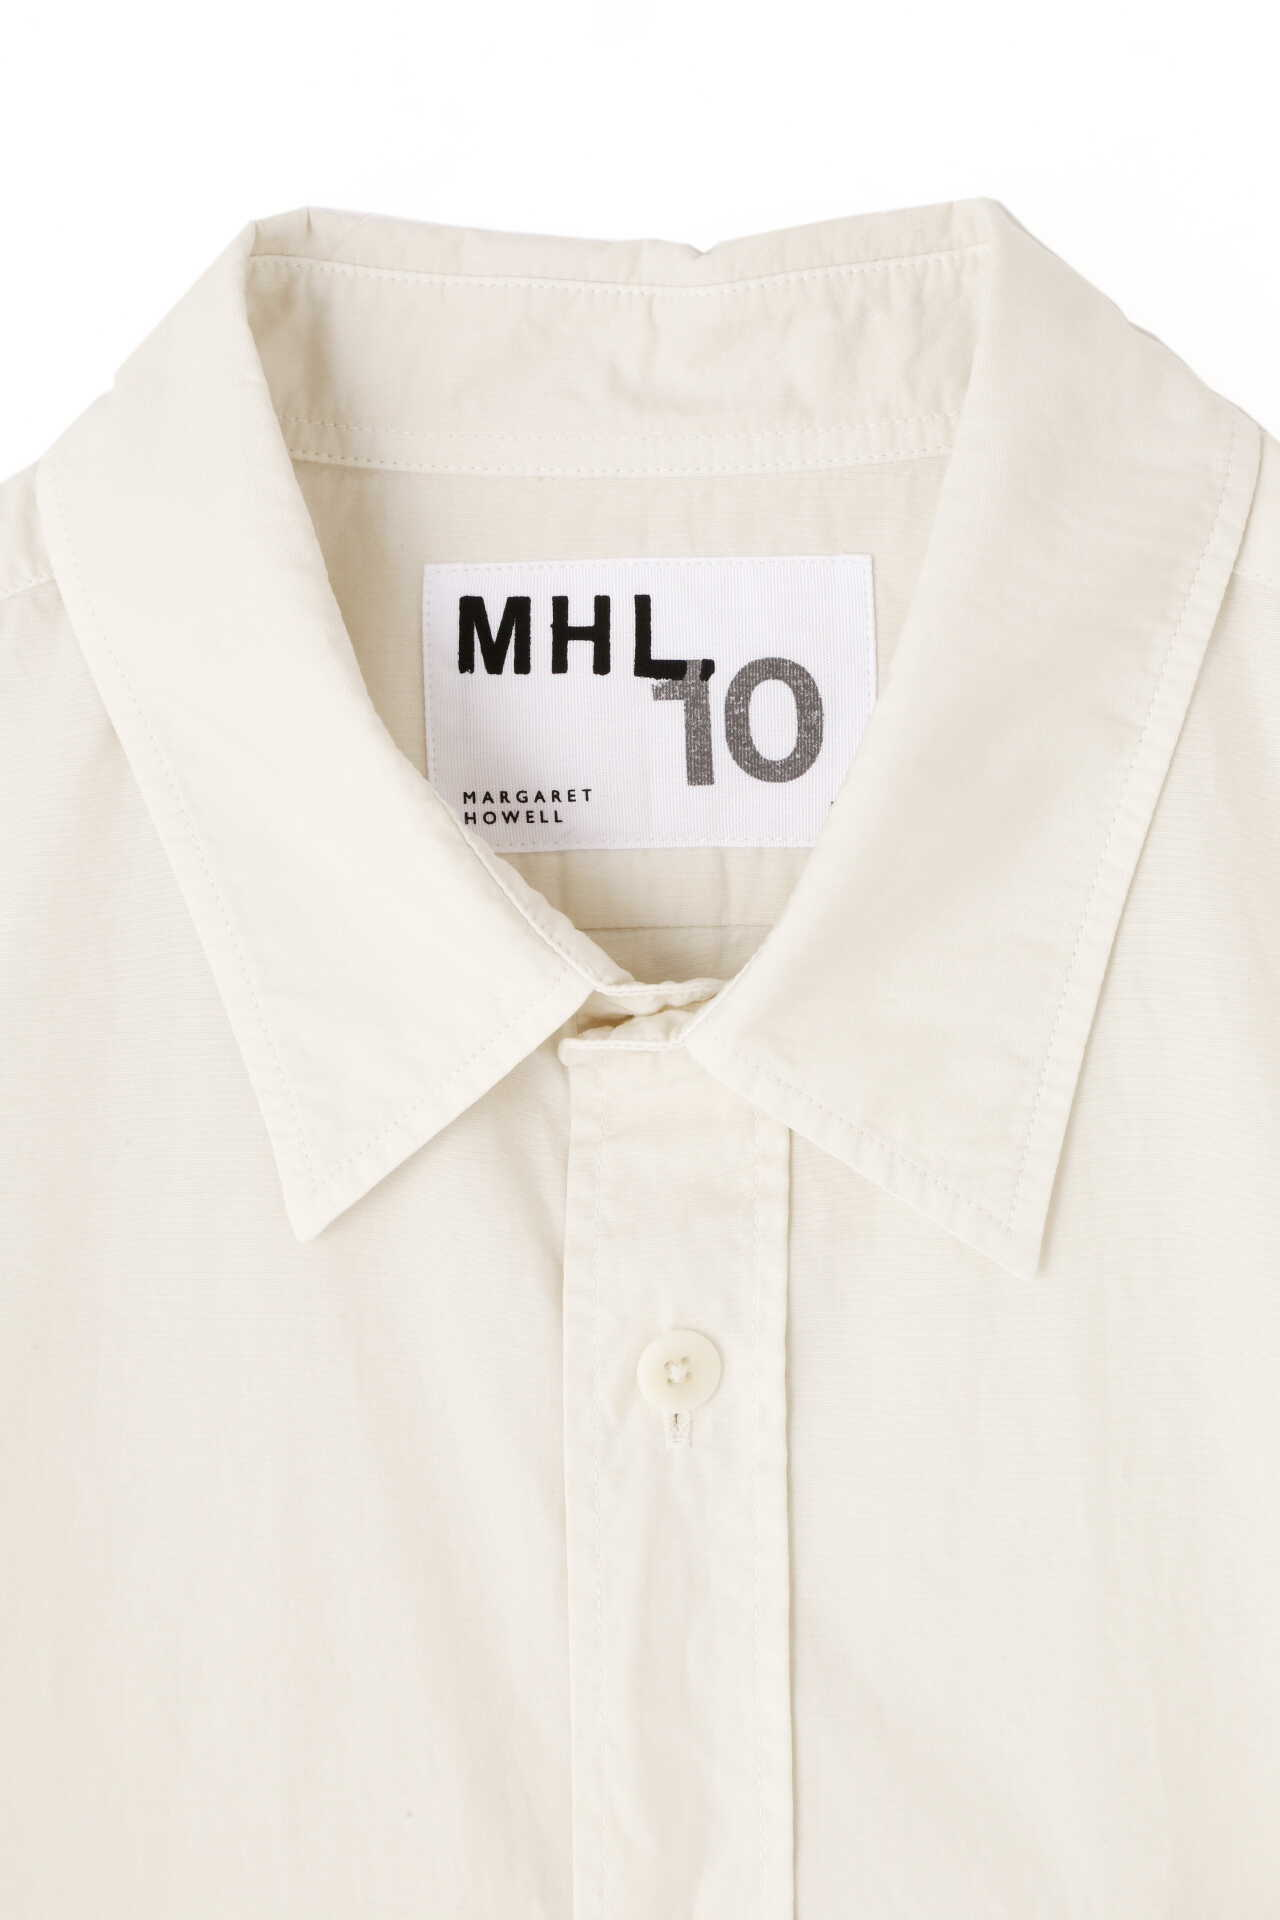 COMPACT COTTON POPLIN(MHL 代官山限定)2